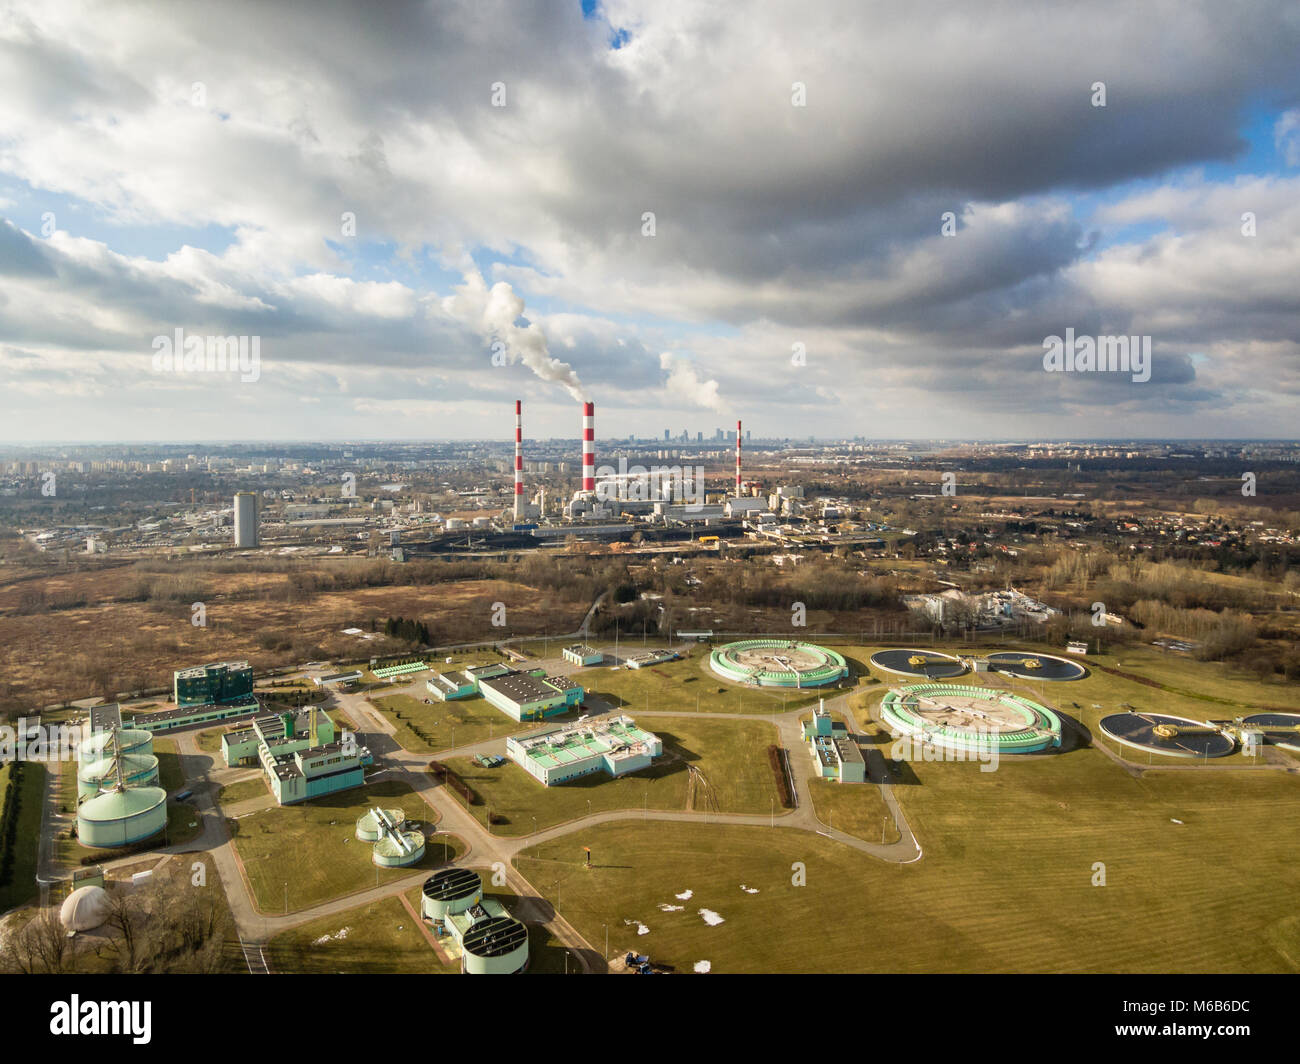 Aerial view of power plant and sewage treatment plant under cloudy sky, Warsaw - Stock Image